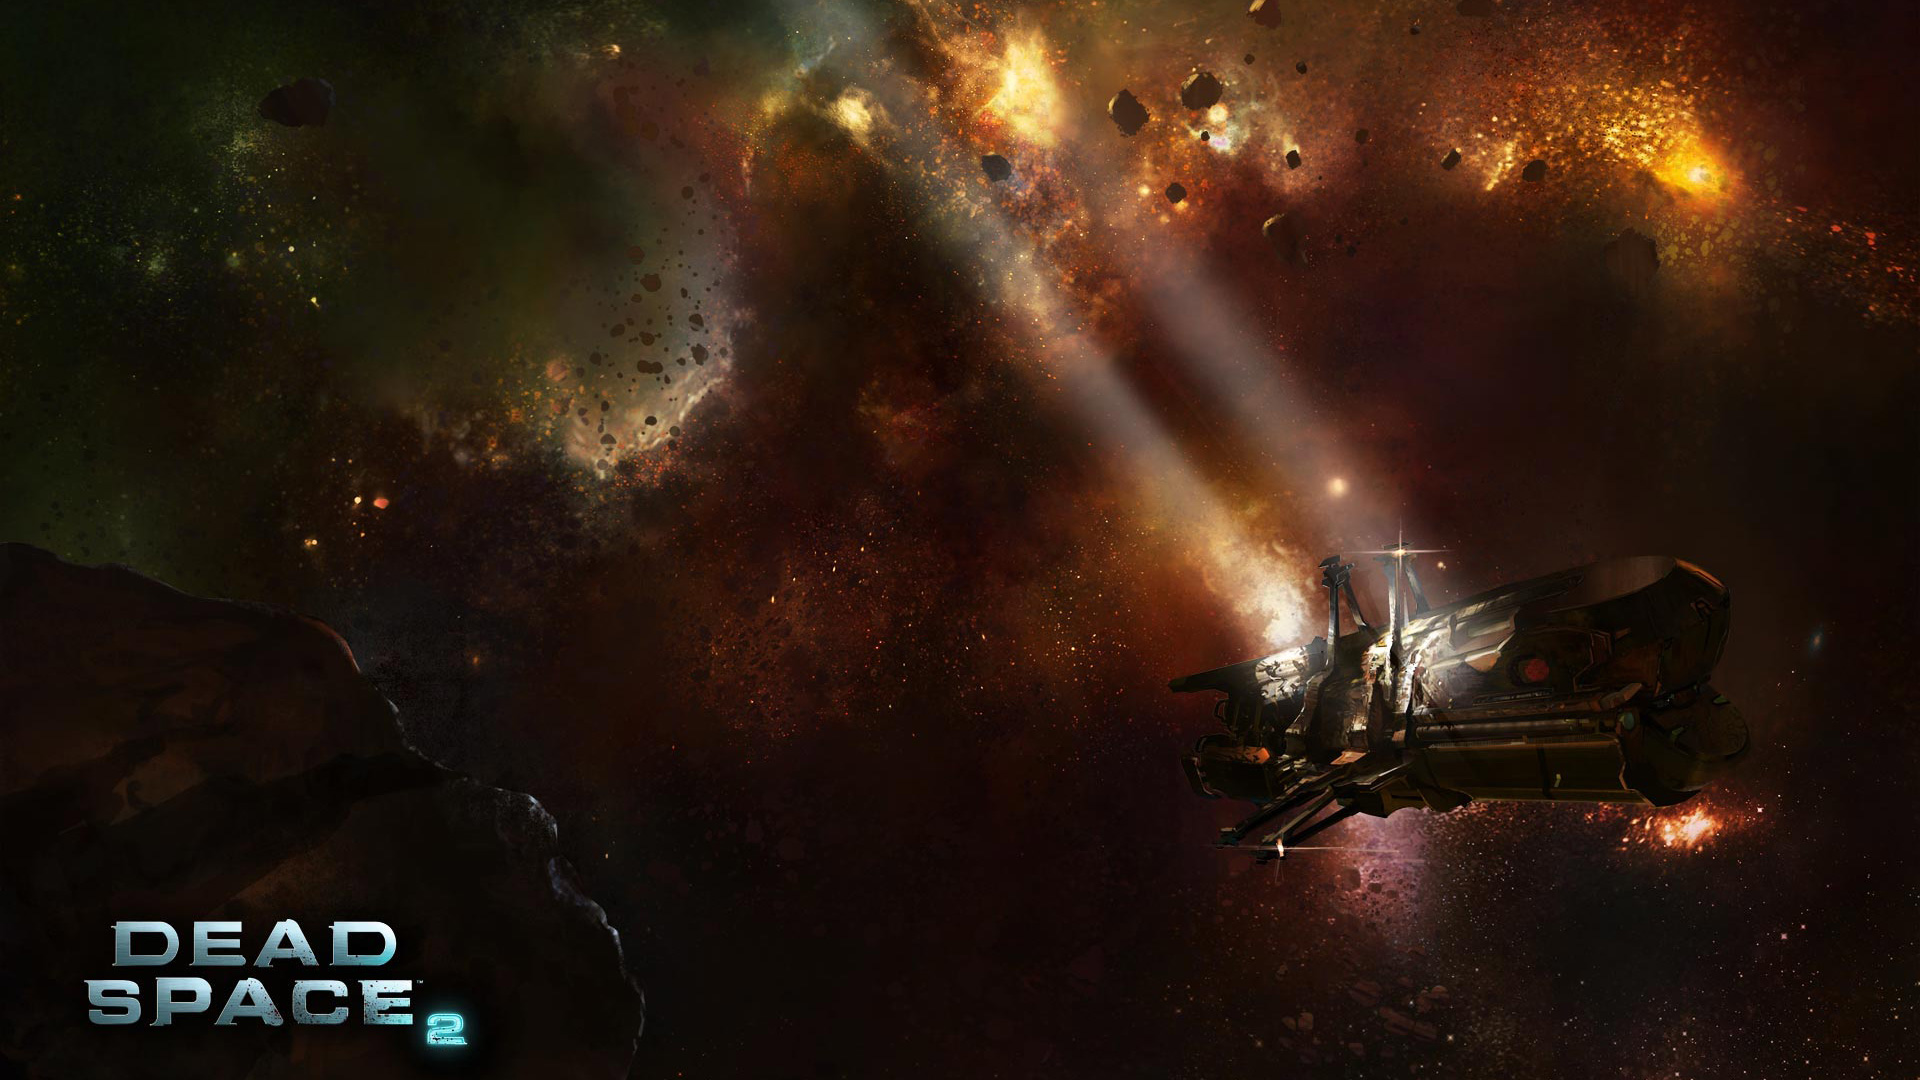 Free Dead Space 2 Wallpaper in 1920x1080